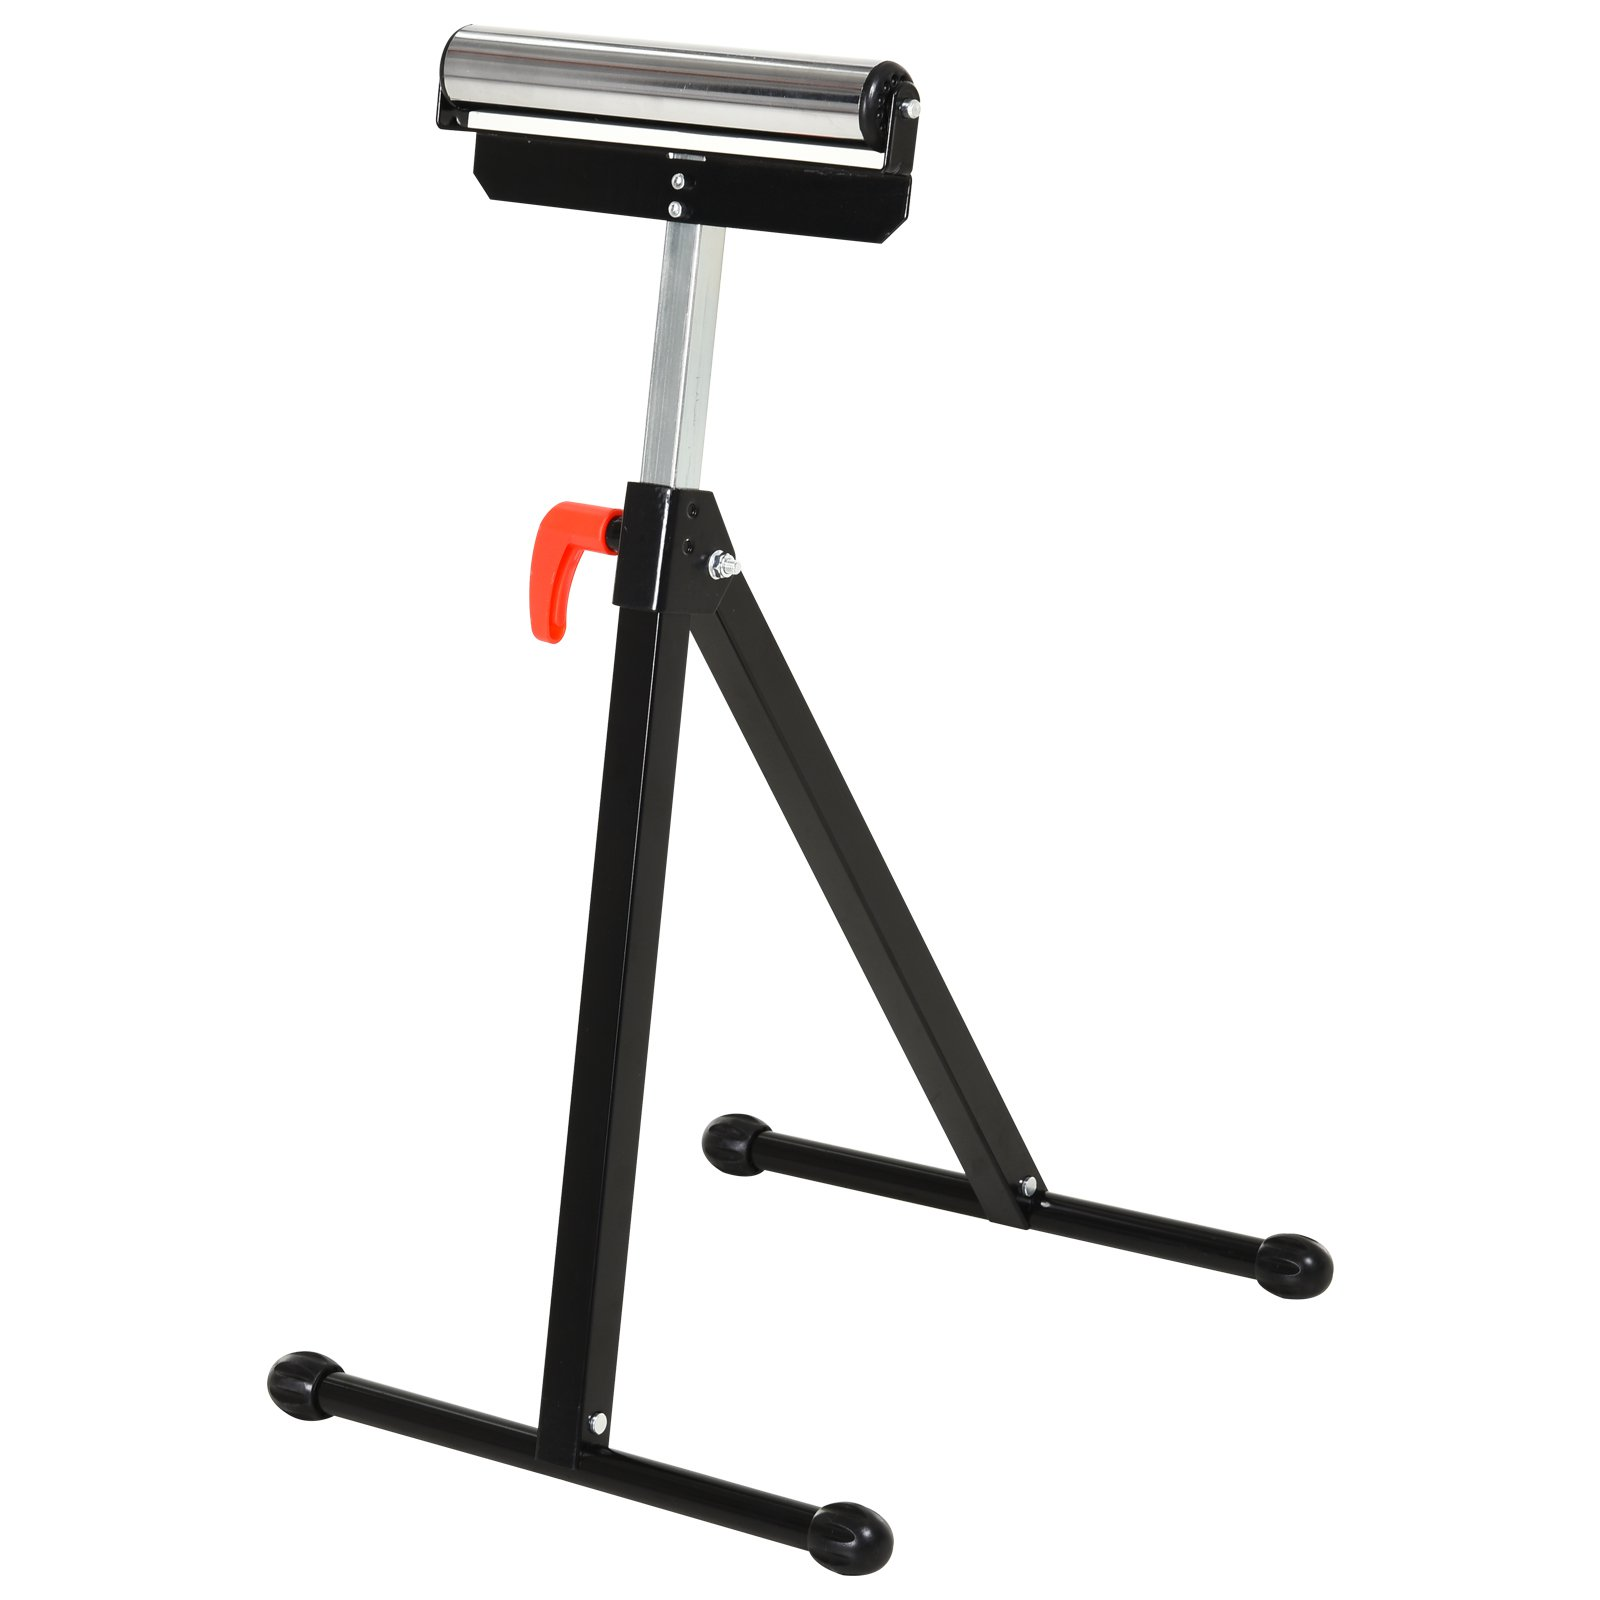 HOMCOM Roller Support Stand Metal Heavy Duty Adjustable Foldable Bench Saw Storage